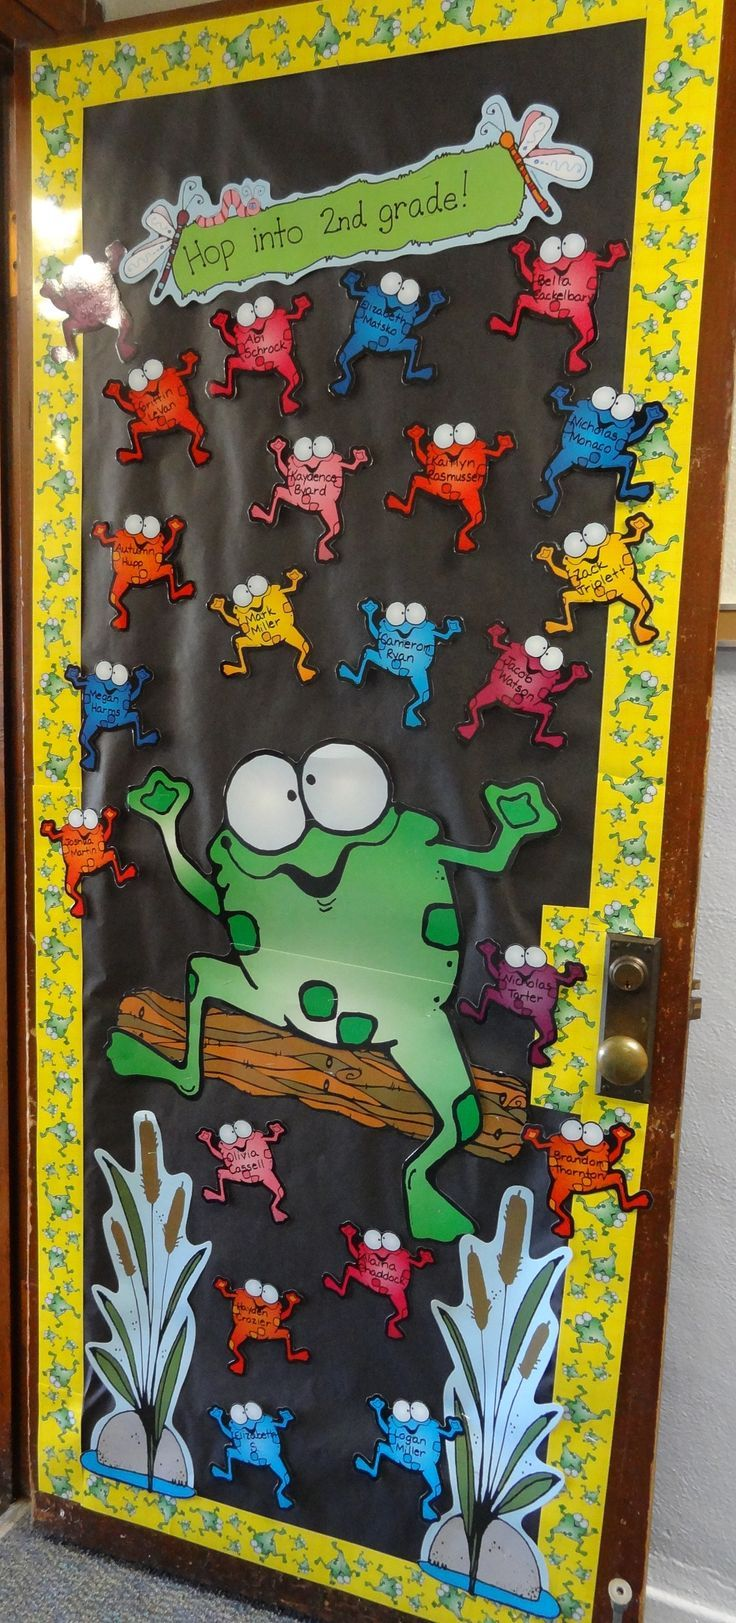 262 best images about classroom decorating and organizing on pinterest teaching classroom setup and fall school doors - Classroom Decorating Ideas